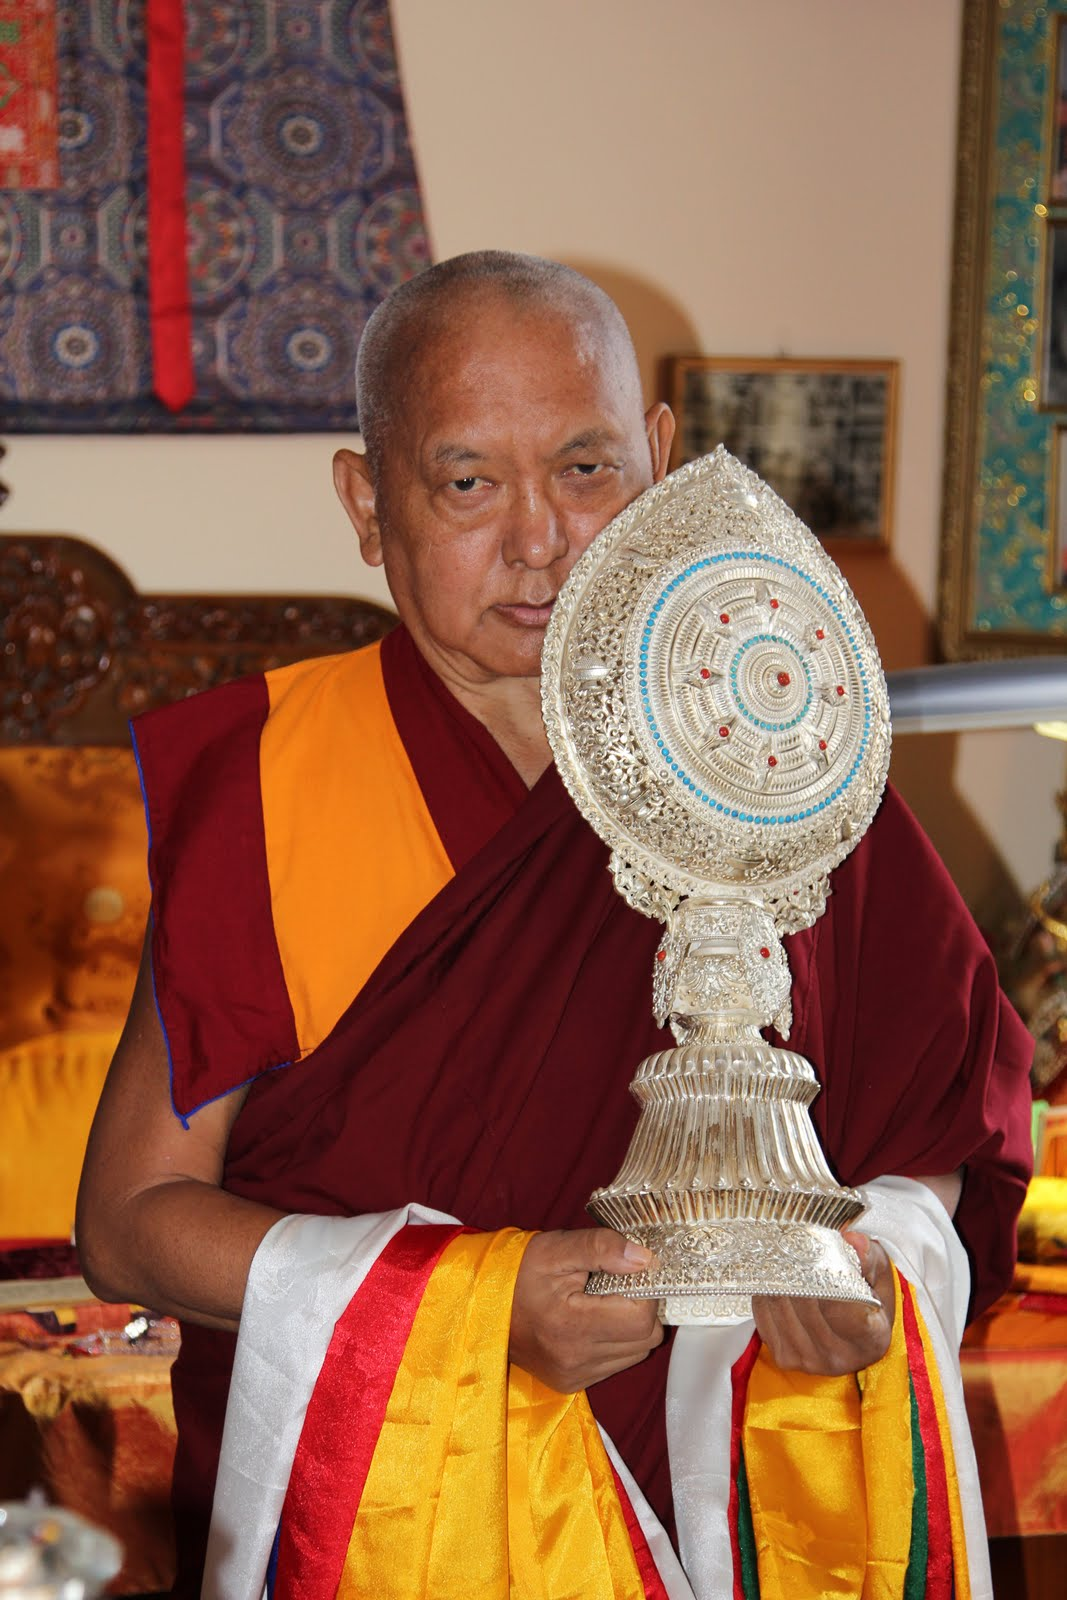 Rinpoche offers a silver Dharma Chakra to His Holiness the Dalai Lama during his visit to FPMT International Office- 6,000 miles away in Portland! Photo by Ven. Roger Kunsang.